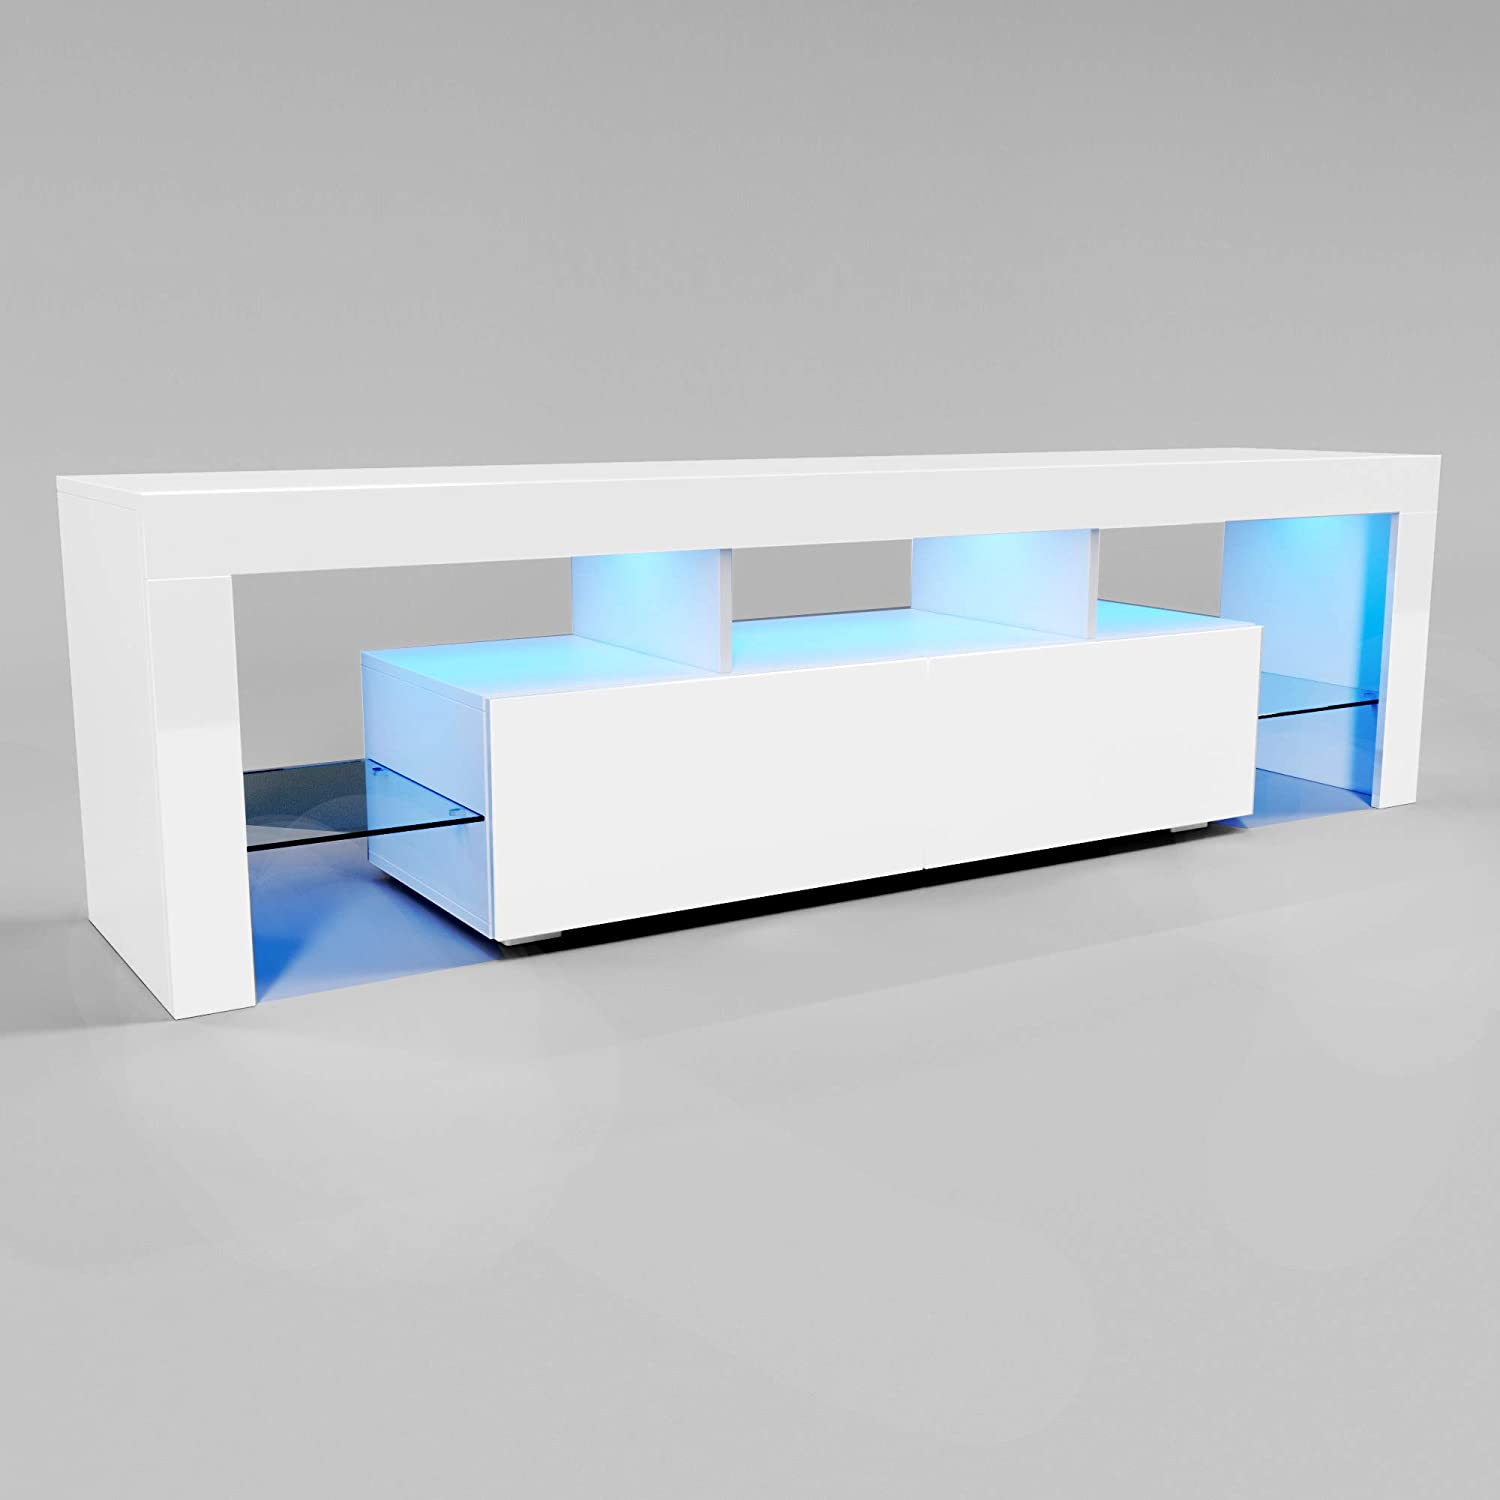 Elegant 1600mm Tv Stand With Led Lights Ambient Tv Cabinet Modern White Gloss For 32 40 43 50 52 55 60 65 Inch 4k Tv Living Room And Bedroom With Storages Home Furniture Amazon Co Uk Kitchen Home